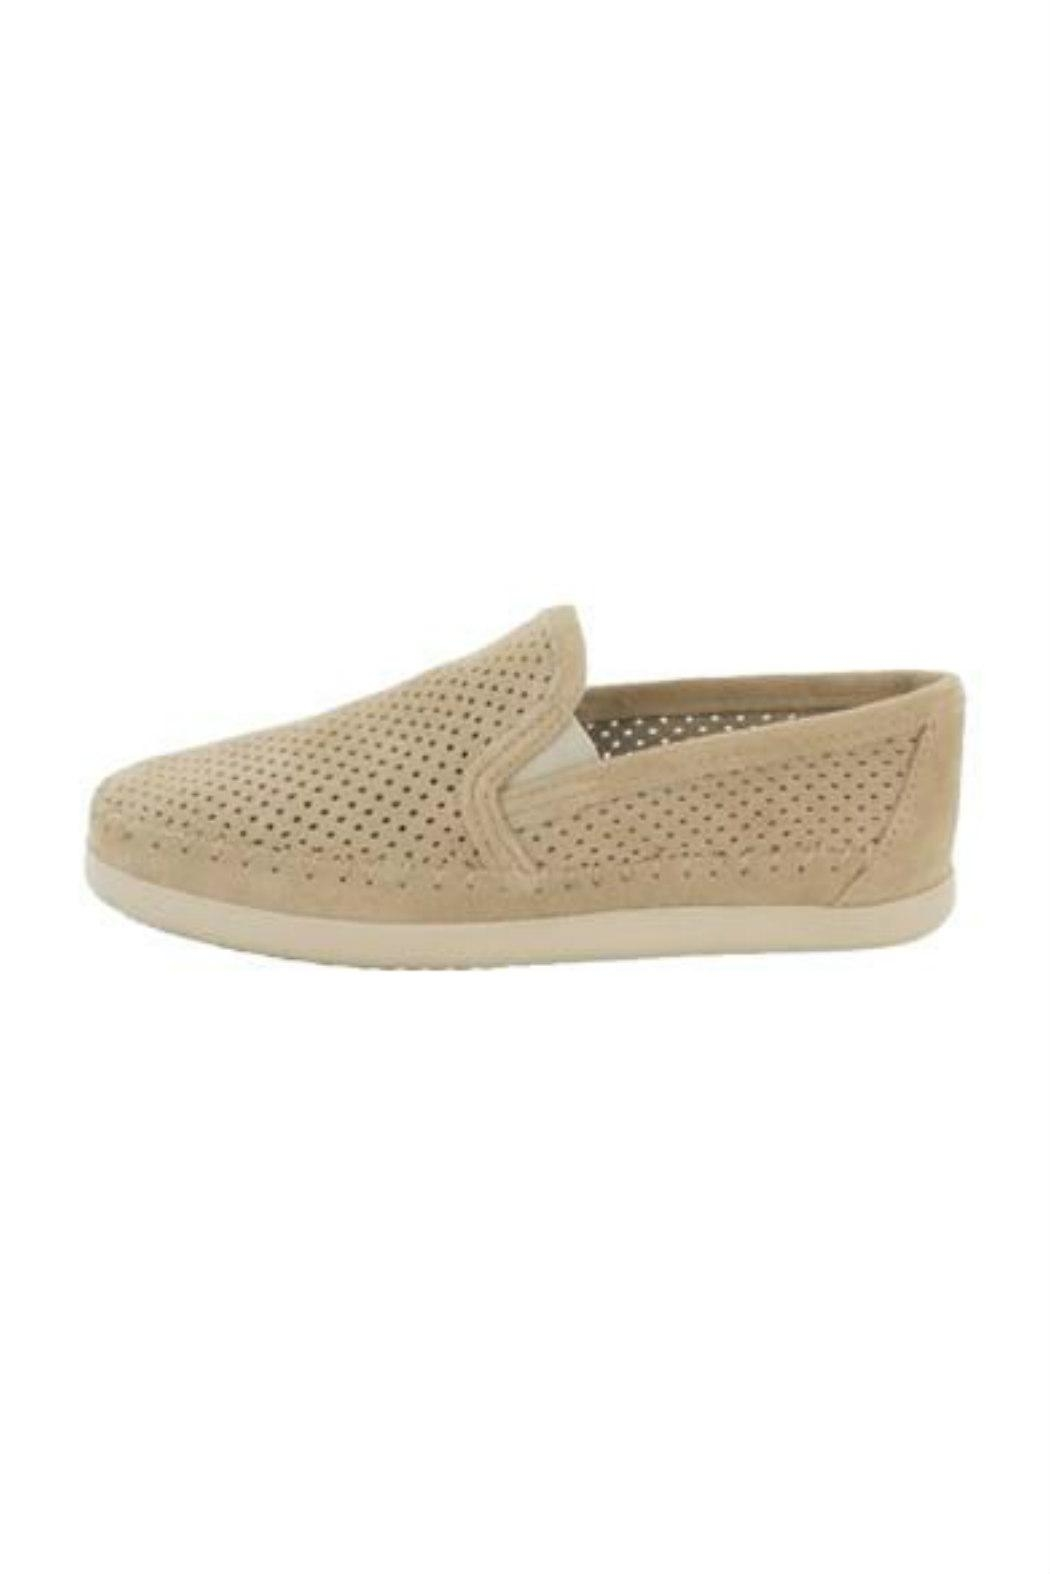 Minnetonka Perforated Suede Sneaker - Front Full Image